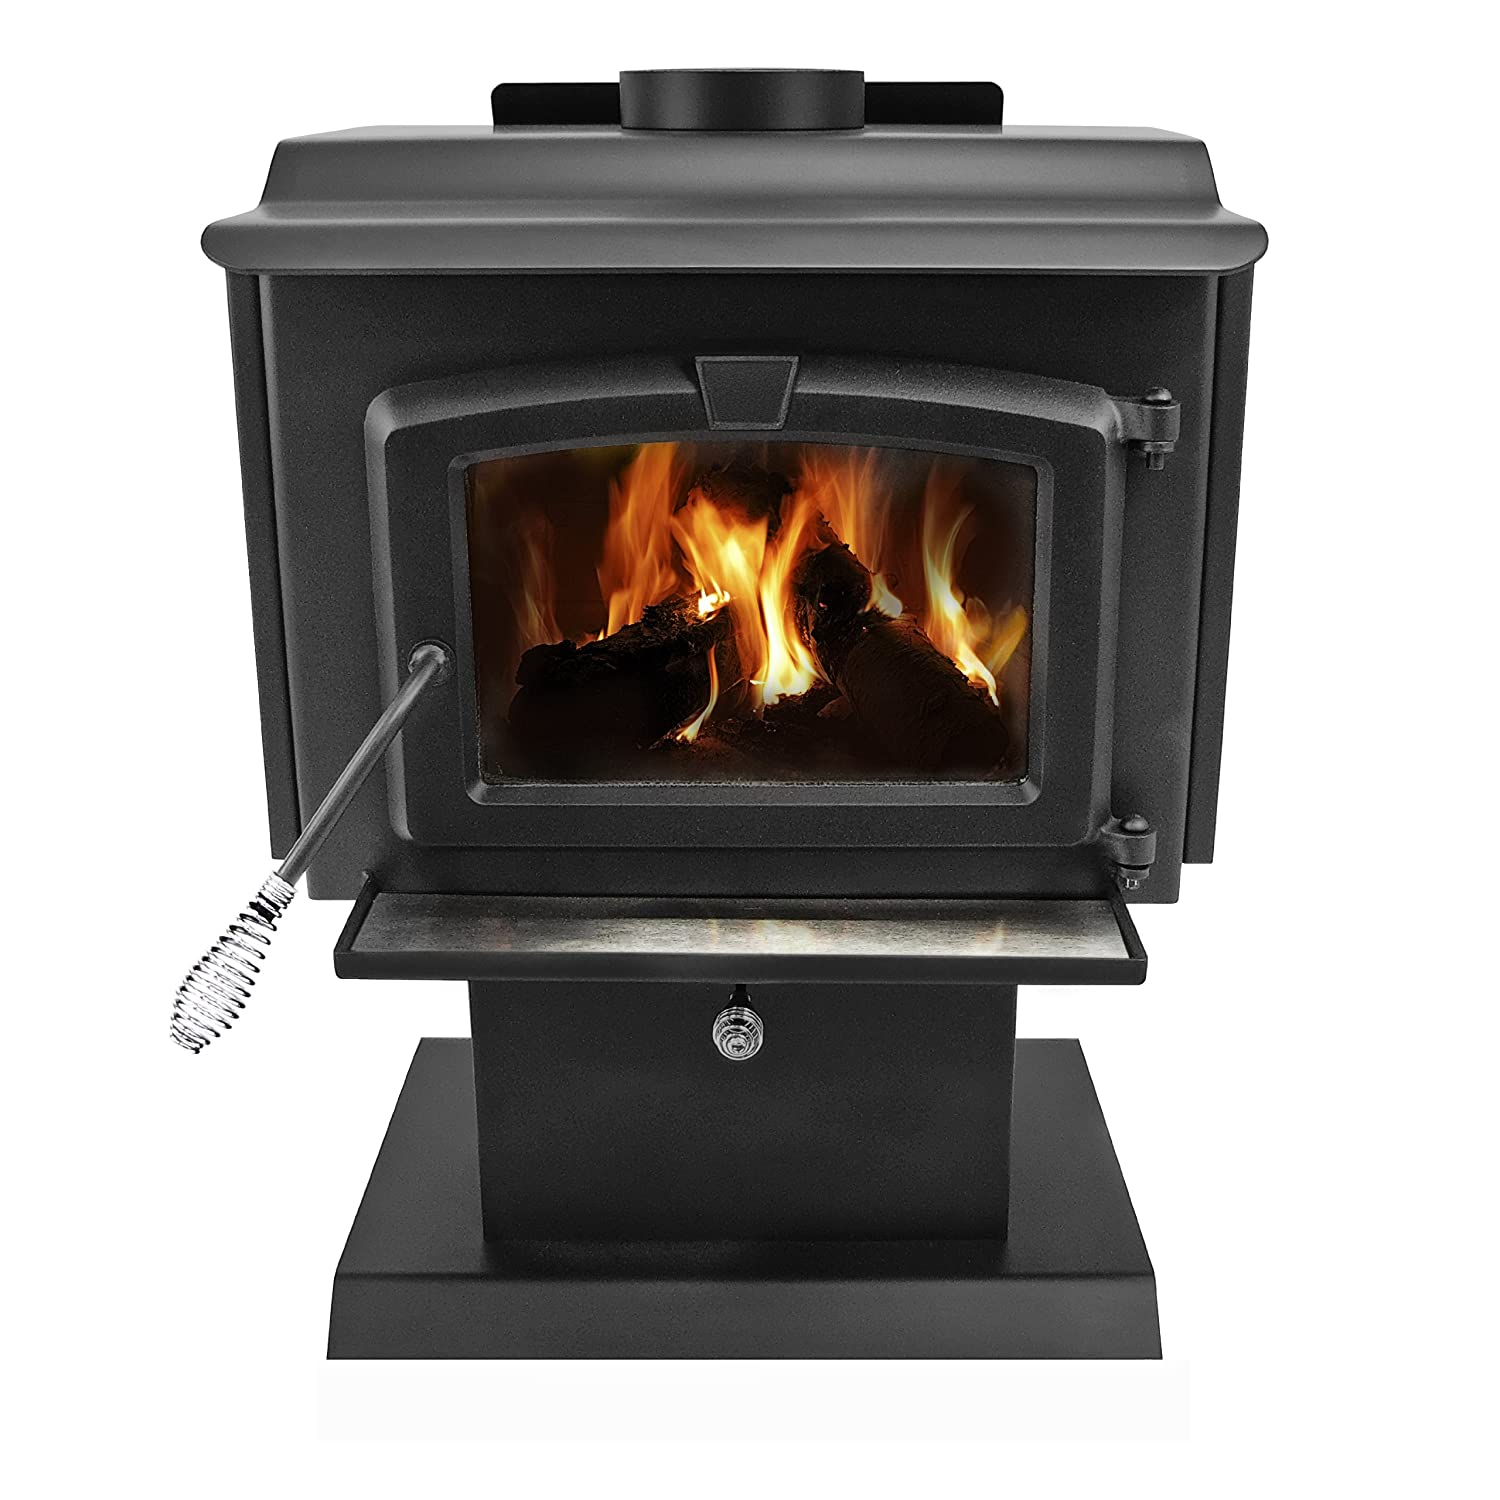 Amazon.com: Pleasant Hearth 1,200 Square Feet Wood Burning Stove, Small:  Home & Kitchen - Amazon.com: Pleasant Hearth 1,200 Square Feet Wood Burning Stove